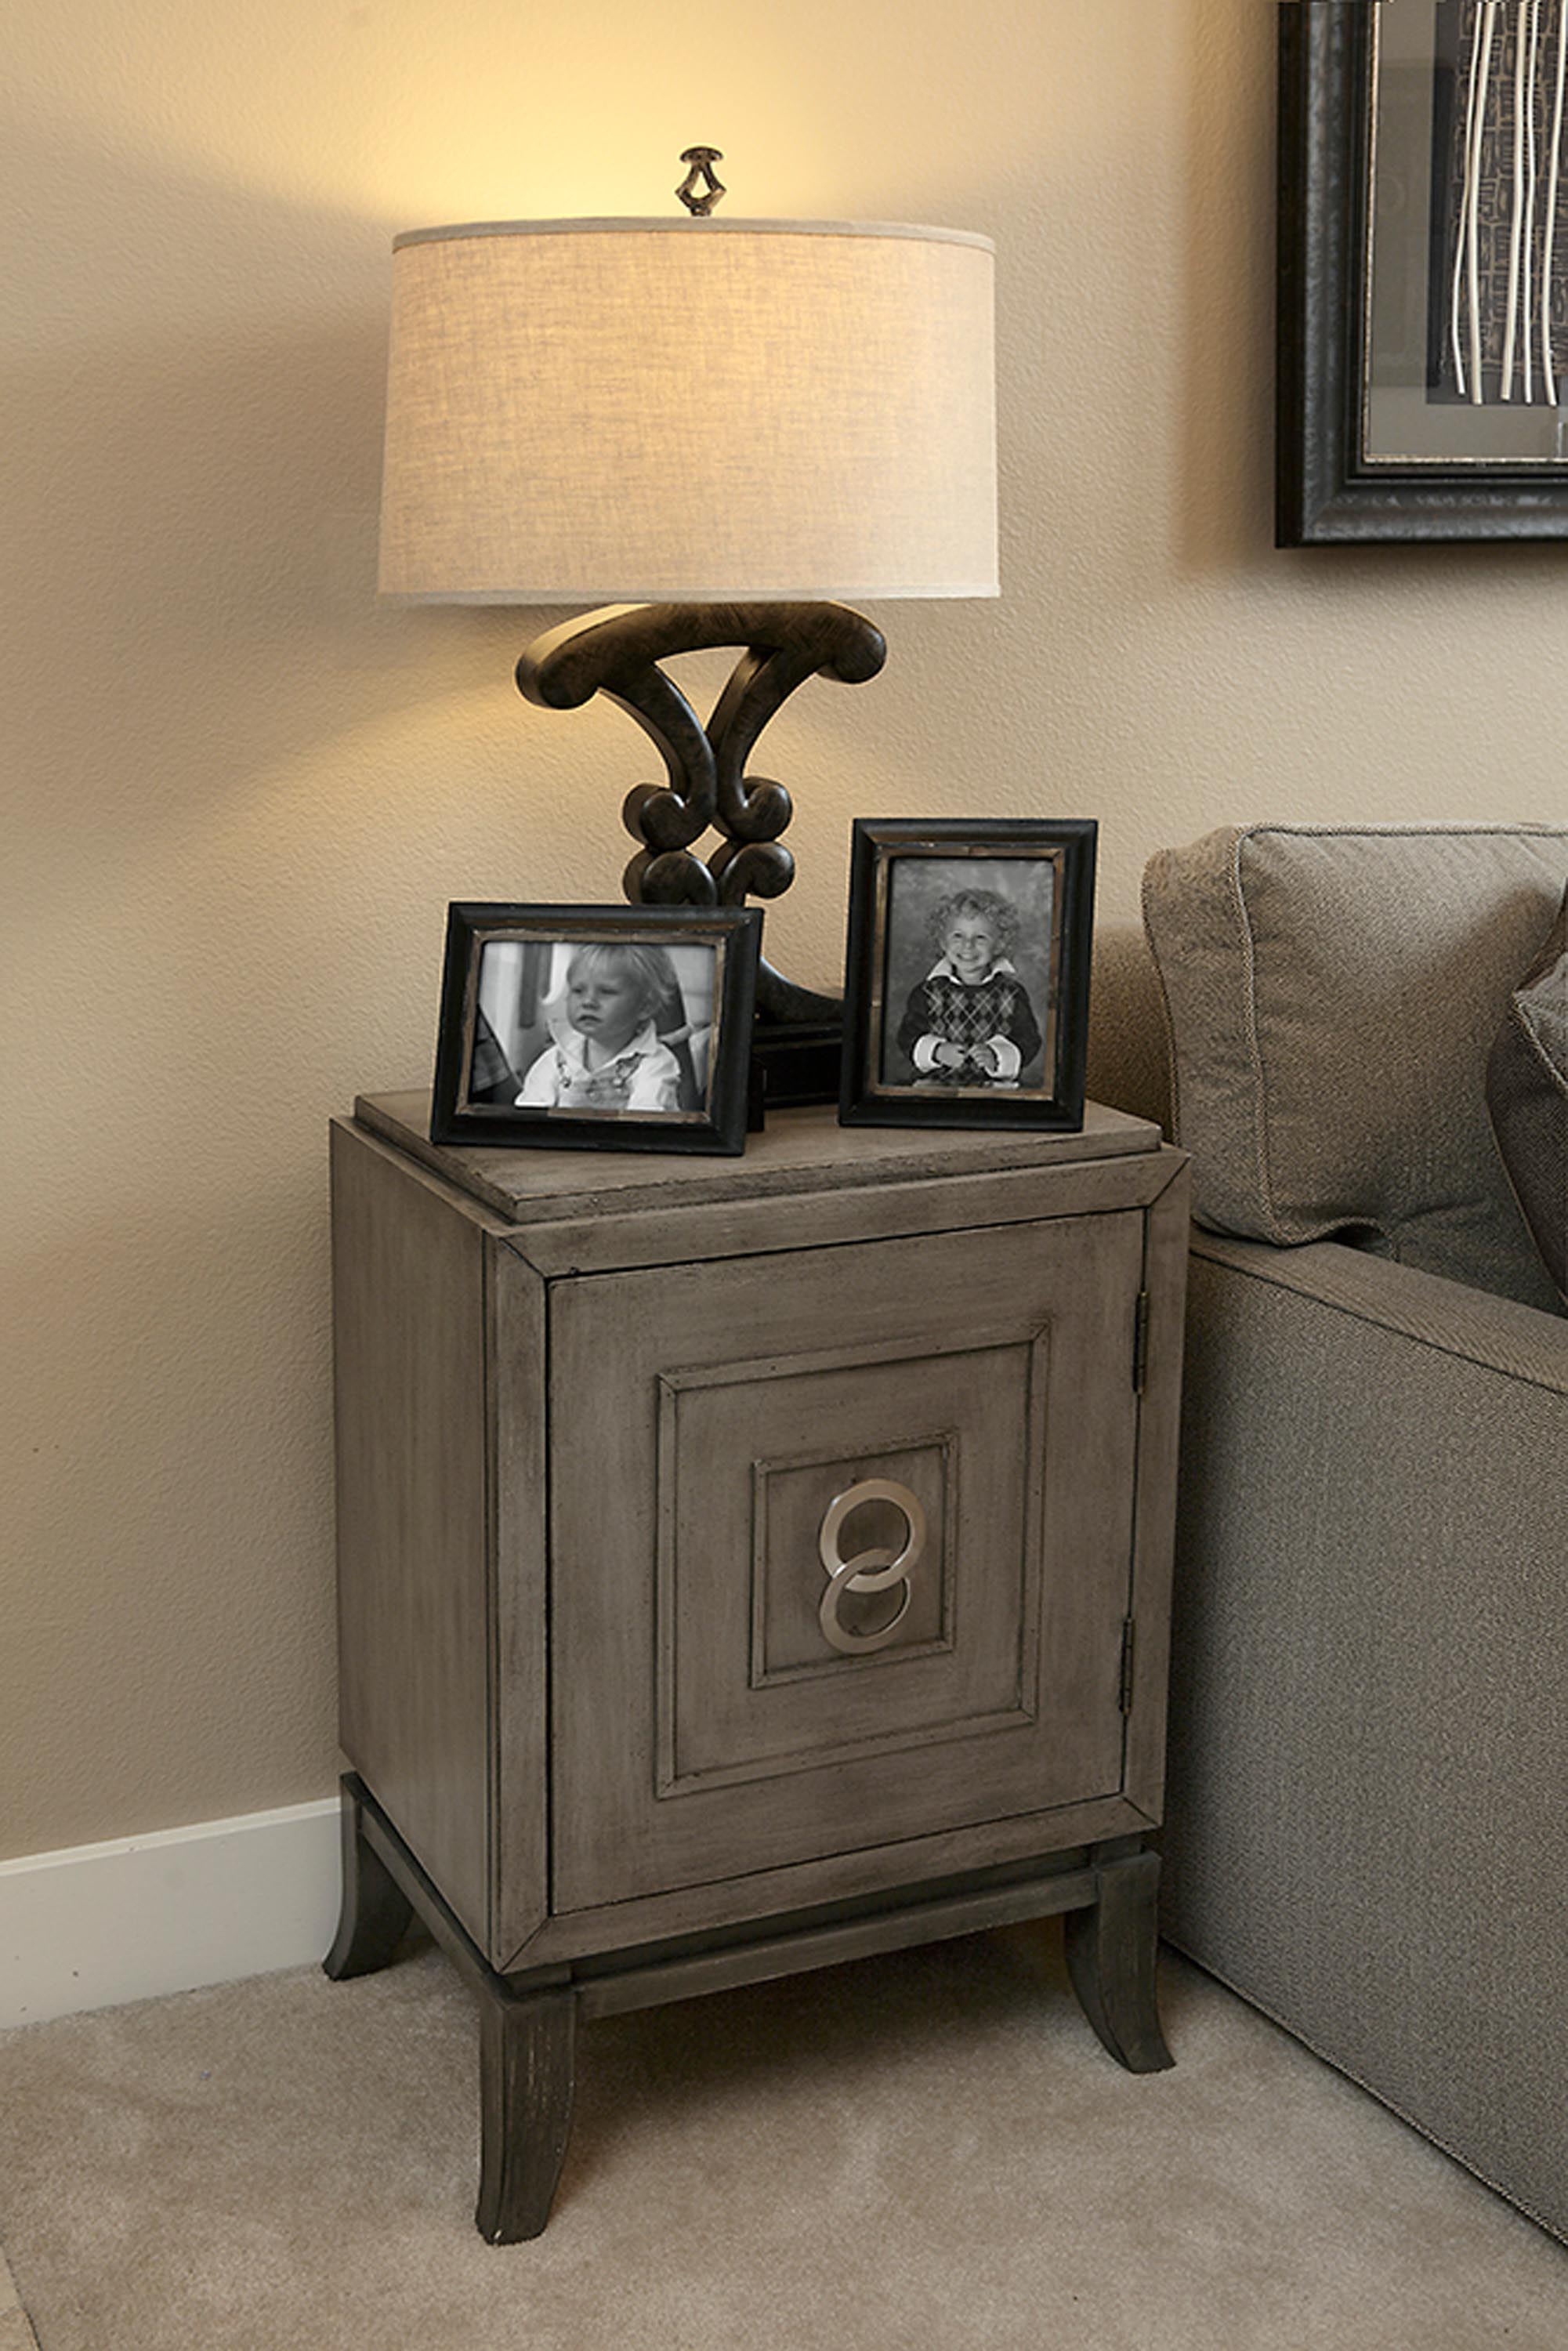 Elegant two picture frame and lamp above the cabinet